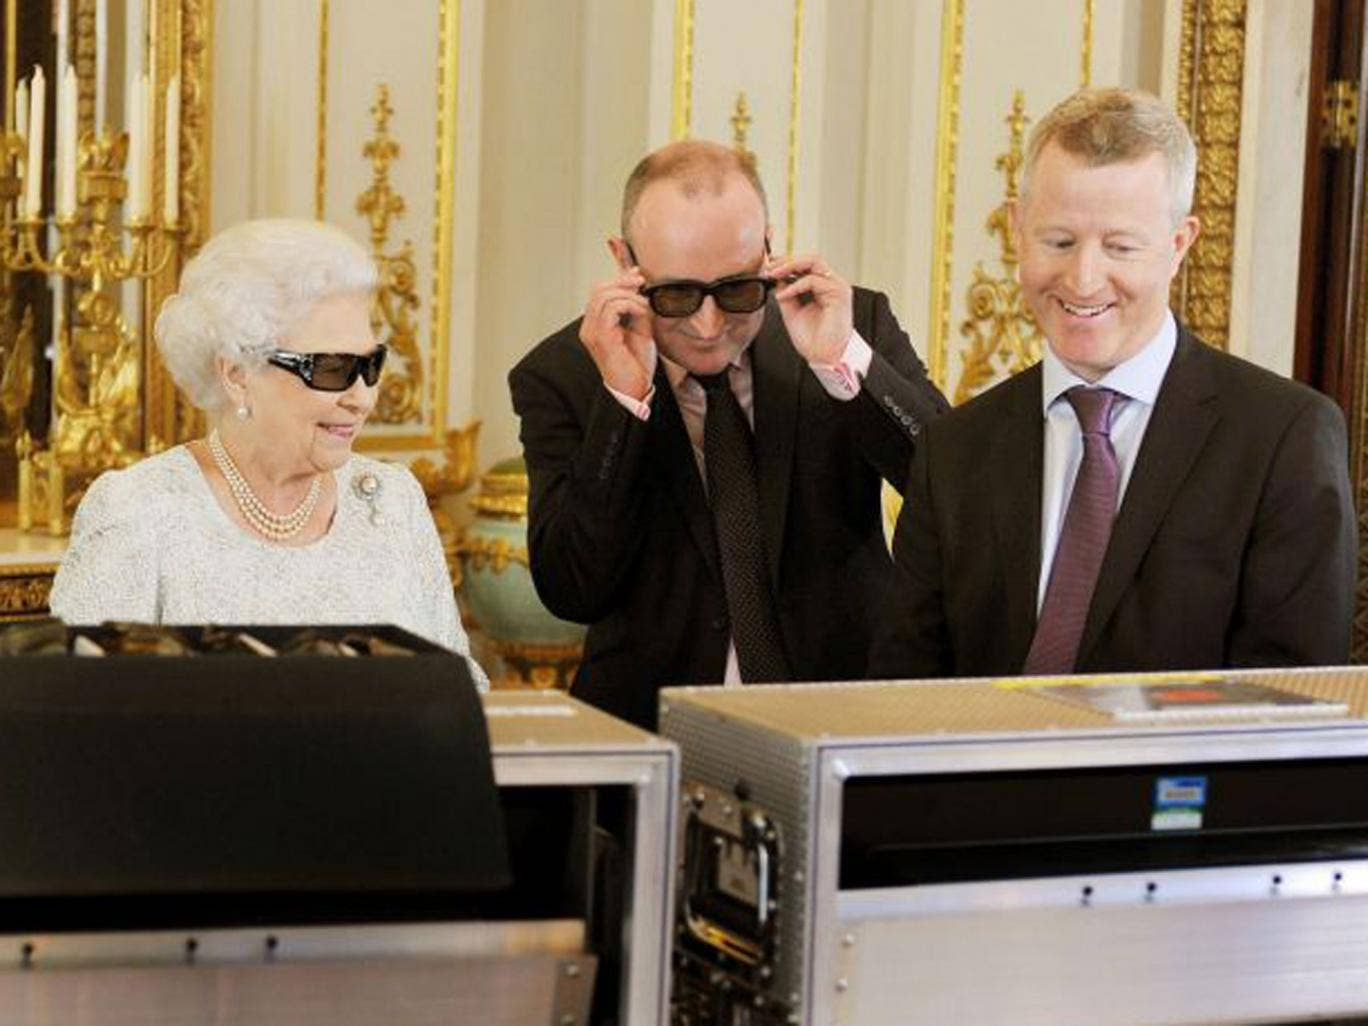 The Queen watches a recording of her Christmas message